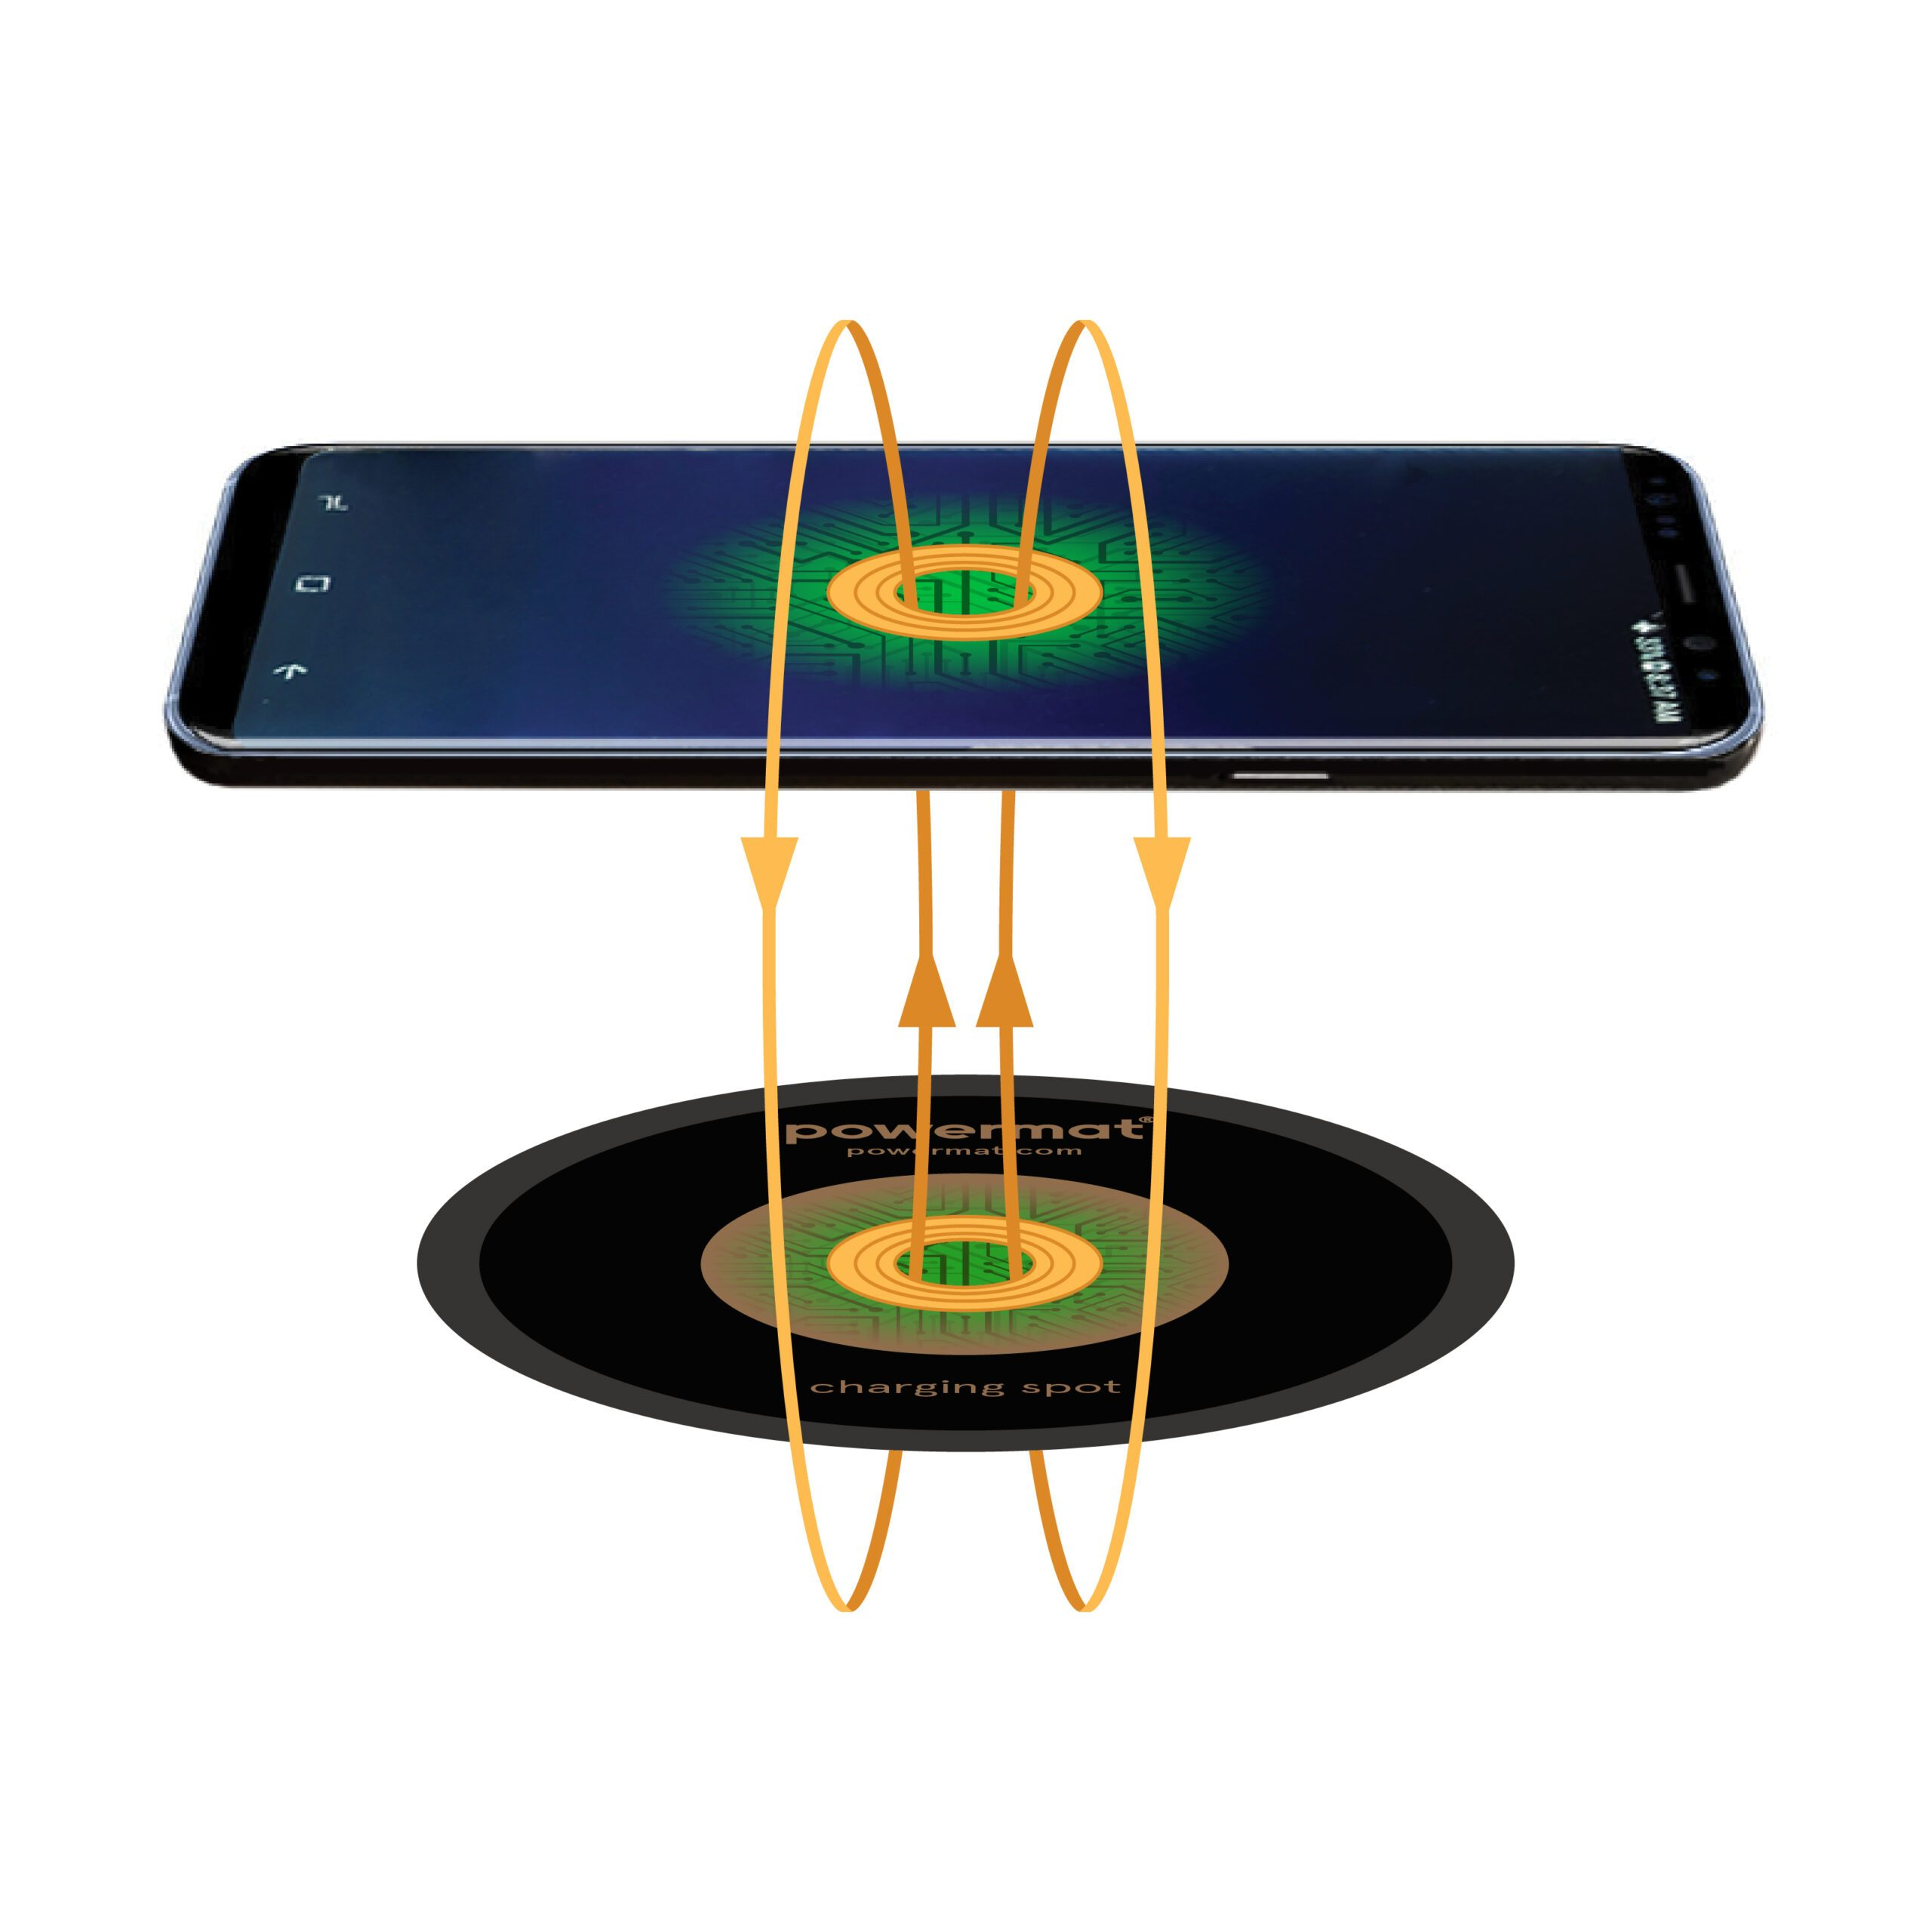 POWERMAT INNOVATION Advanced Wireless Power Technology